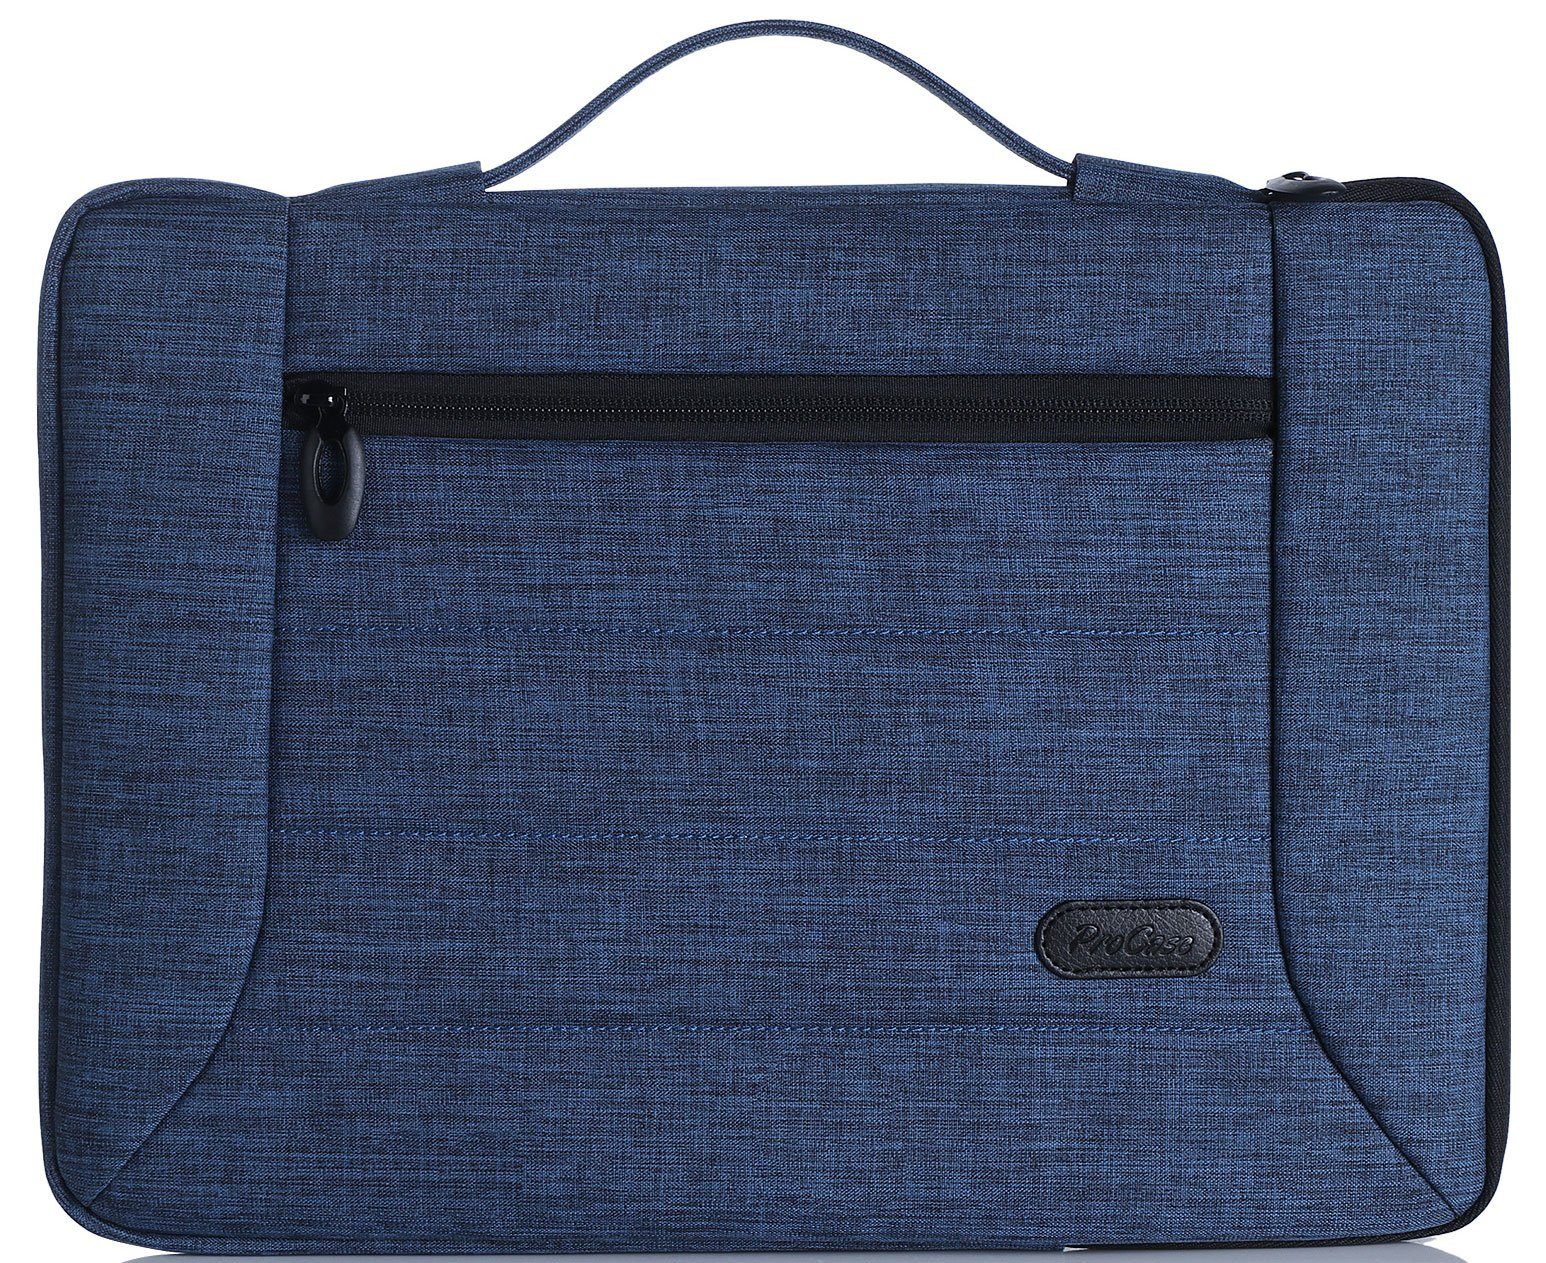 ProCase 12-12.9 Inch Laptop Sleeve Case Cover Bag for Macbook Surface Pro 2017/Pro 4 3, Apple iPad Pro, Most 11'' 12'' Laptop Ultrabook Notebook MacBook Chromebook -Navy Blue